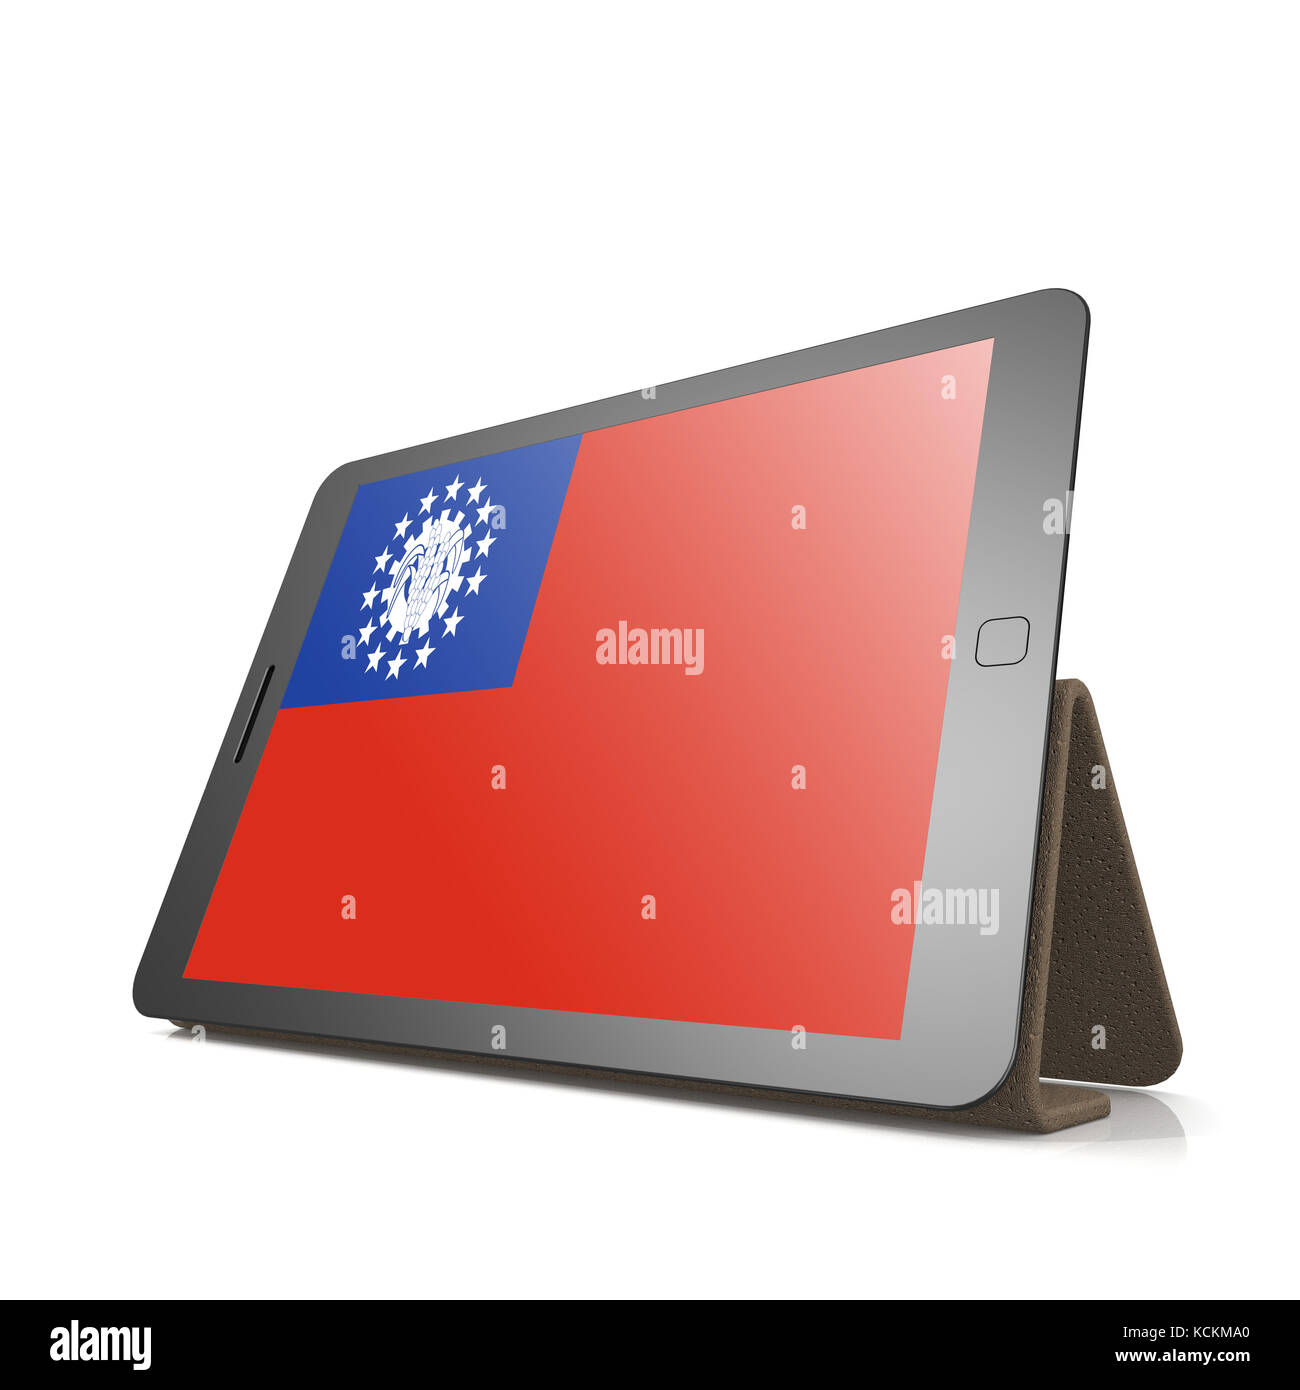 Tablet with Myanmar flag image with hi-res rendered artwork that could be used for any graphic design. - Stock Image